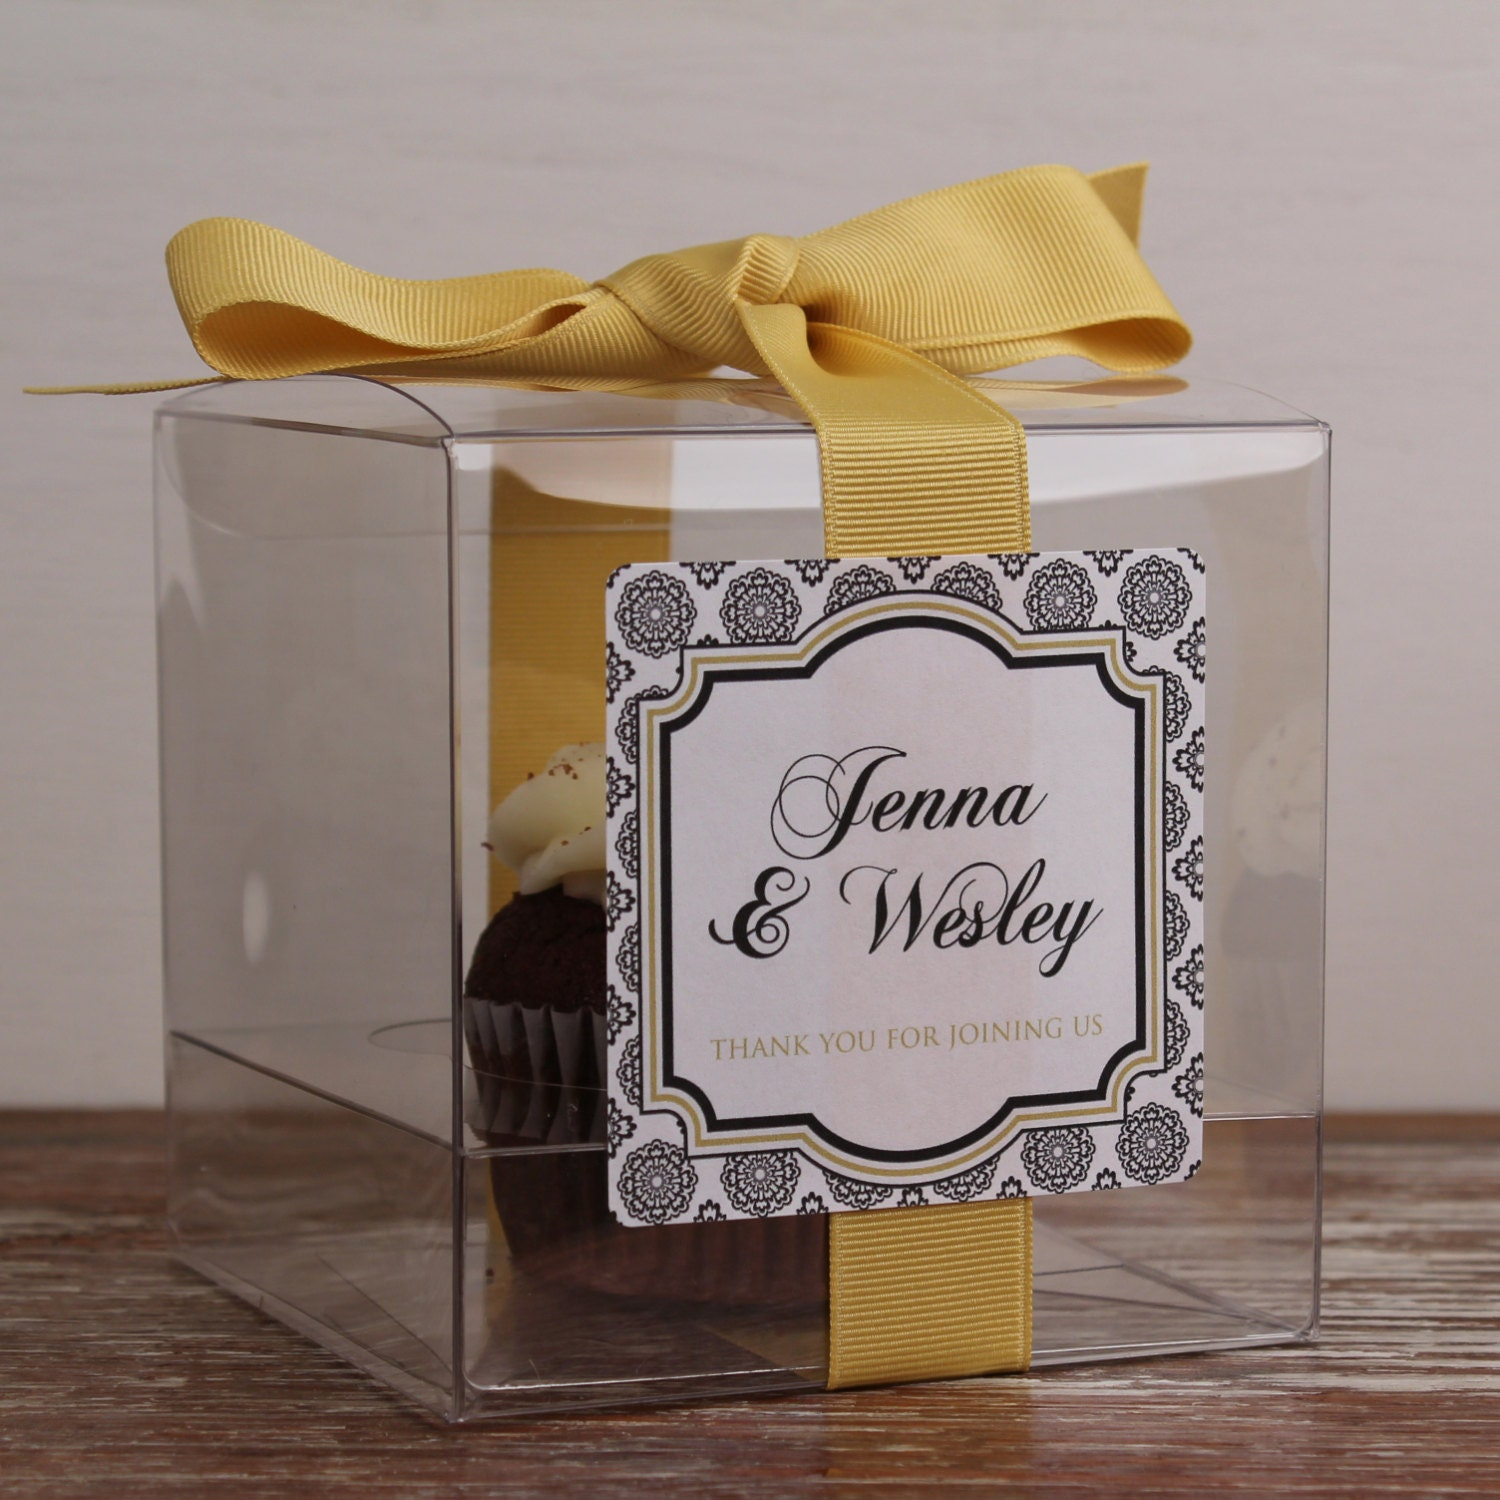 8 wedding favor cupcake boxes west design any by thefavorbox. Black Bedroom Furniture Sets. Home Design Ideas